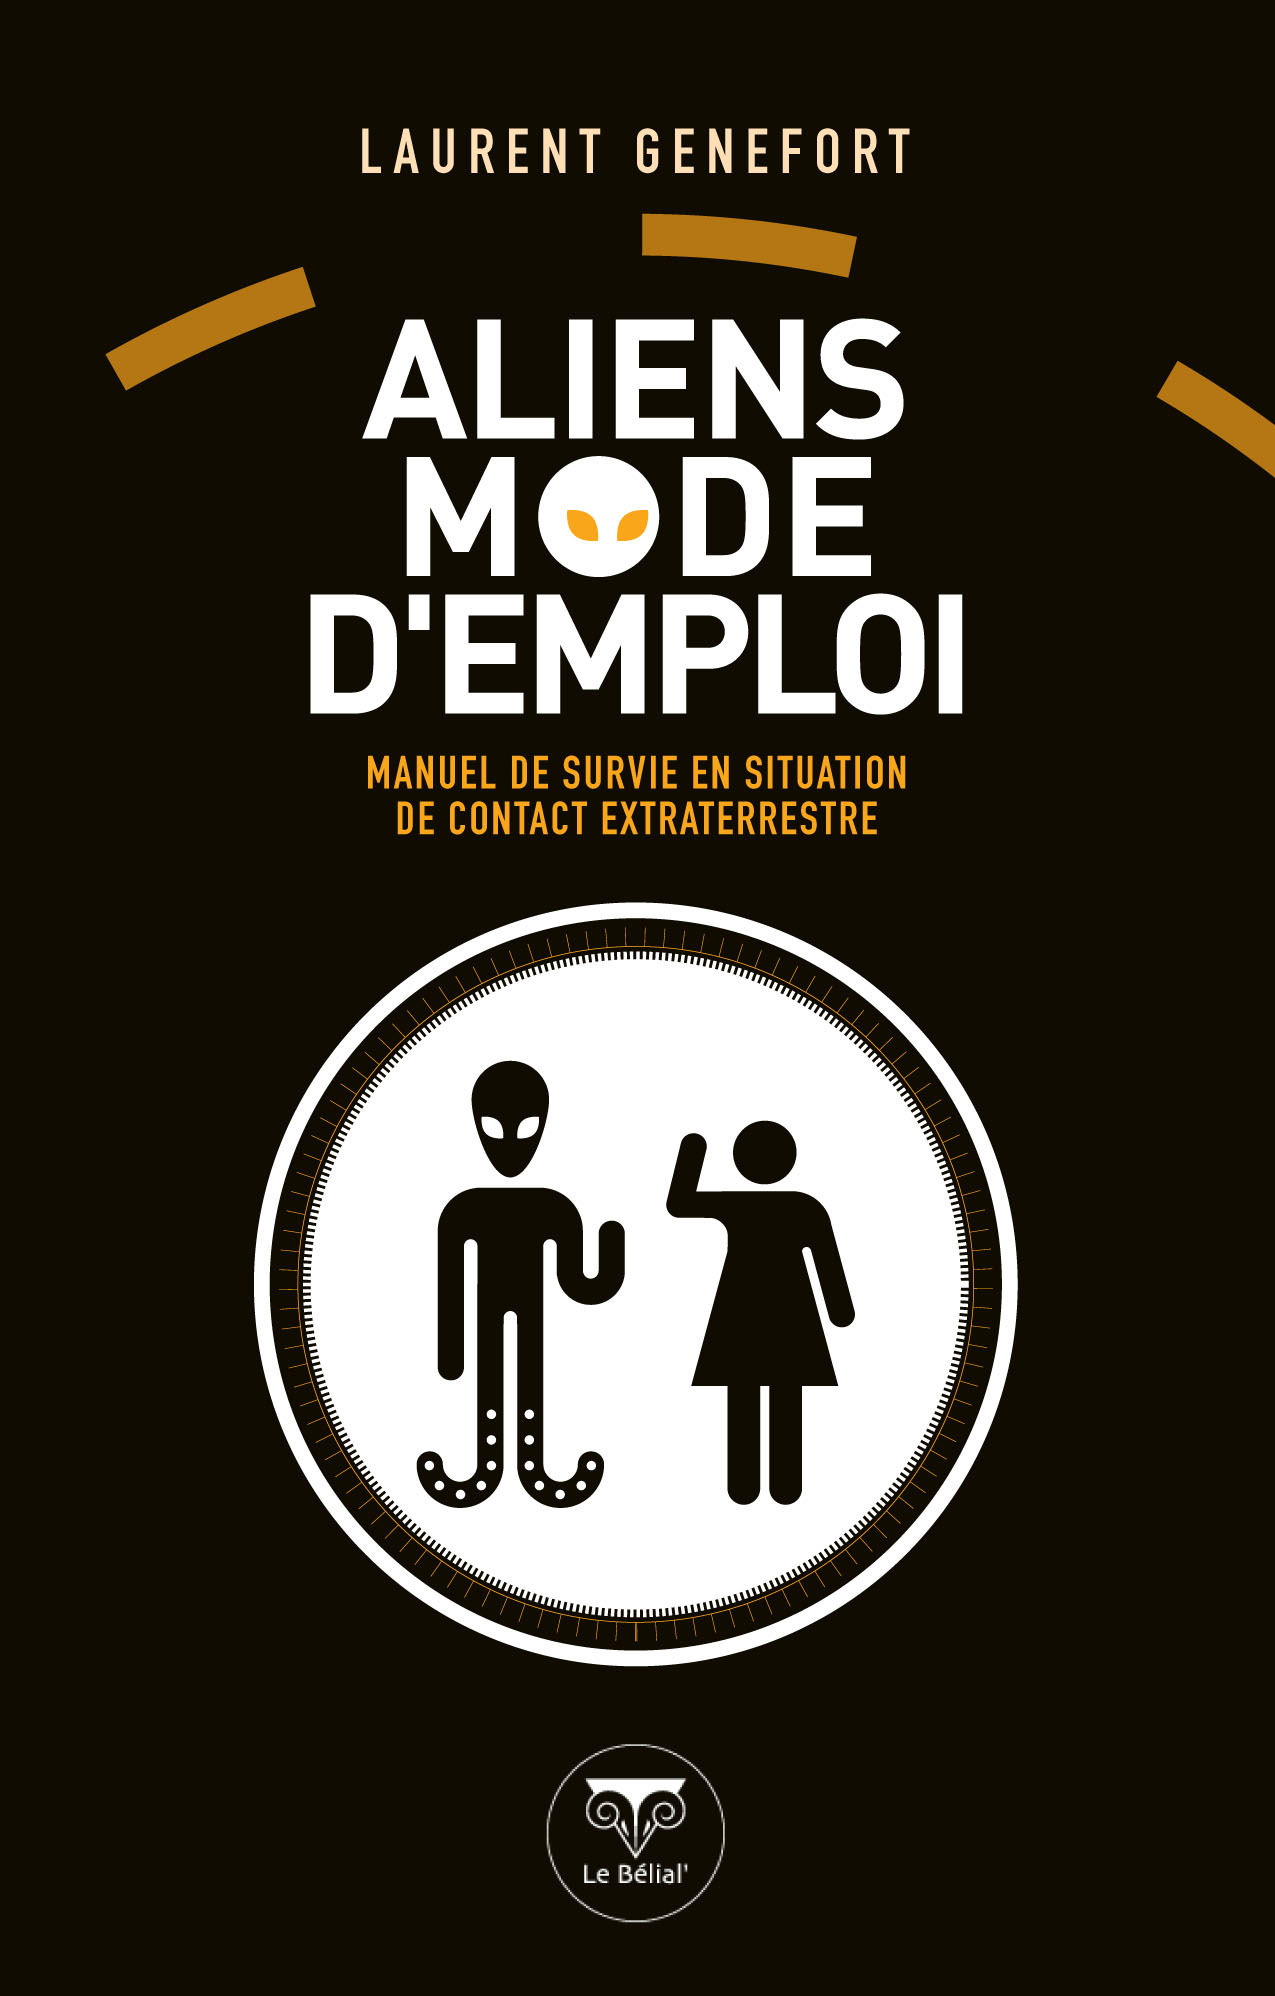 Aliens mode d emploi de laurent genefort le b lial 39 for Alarme verisure mode d emploi